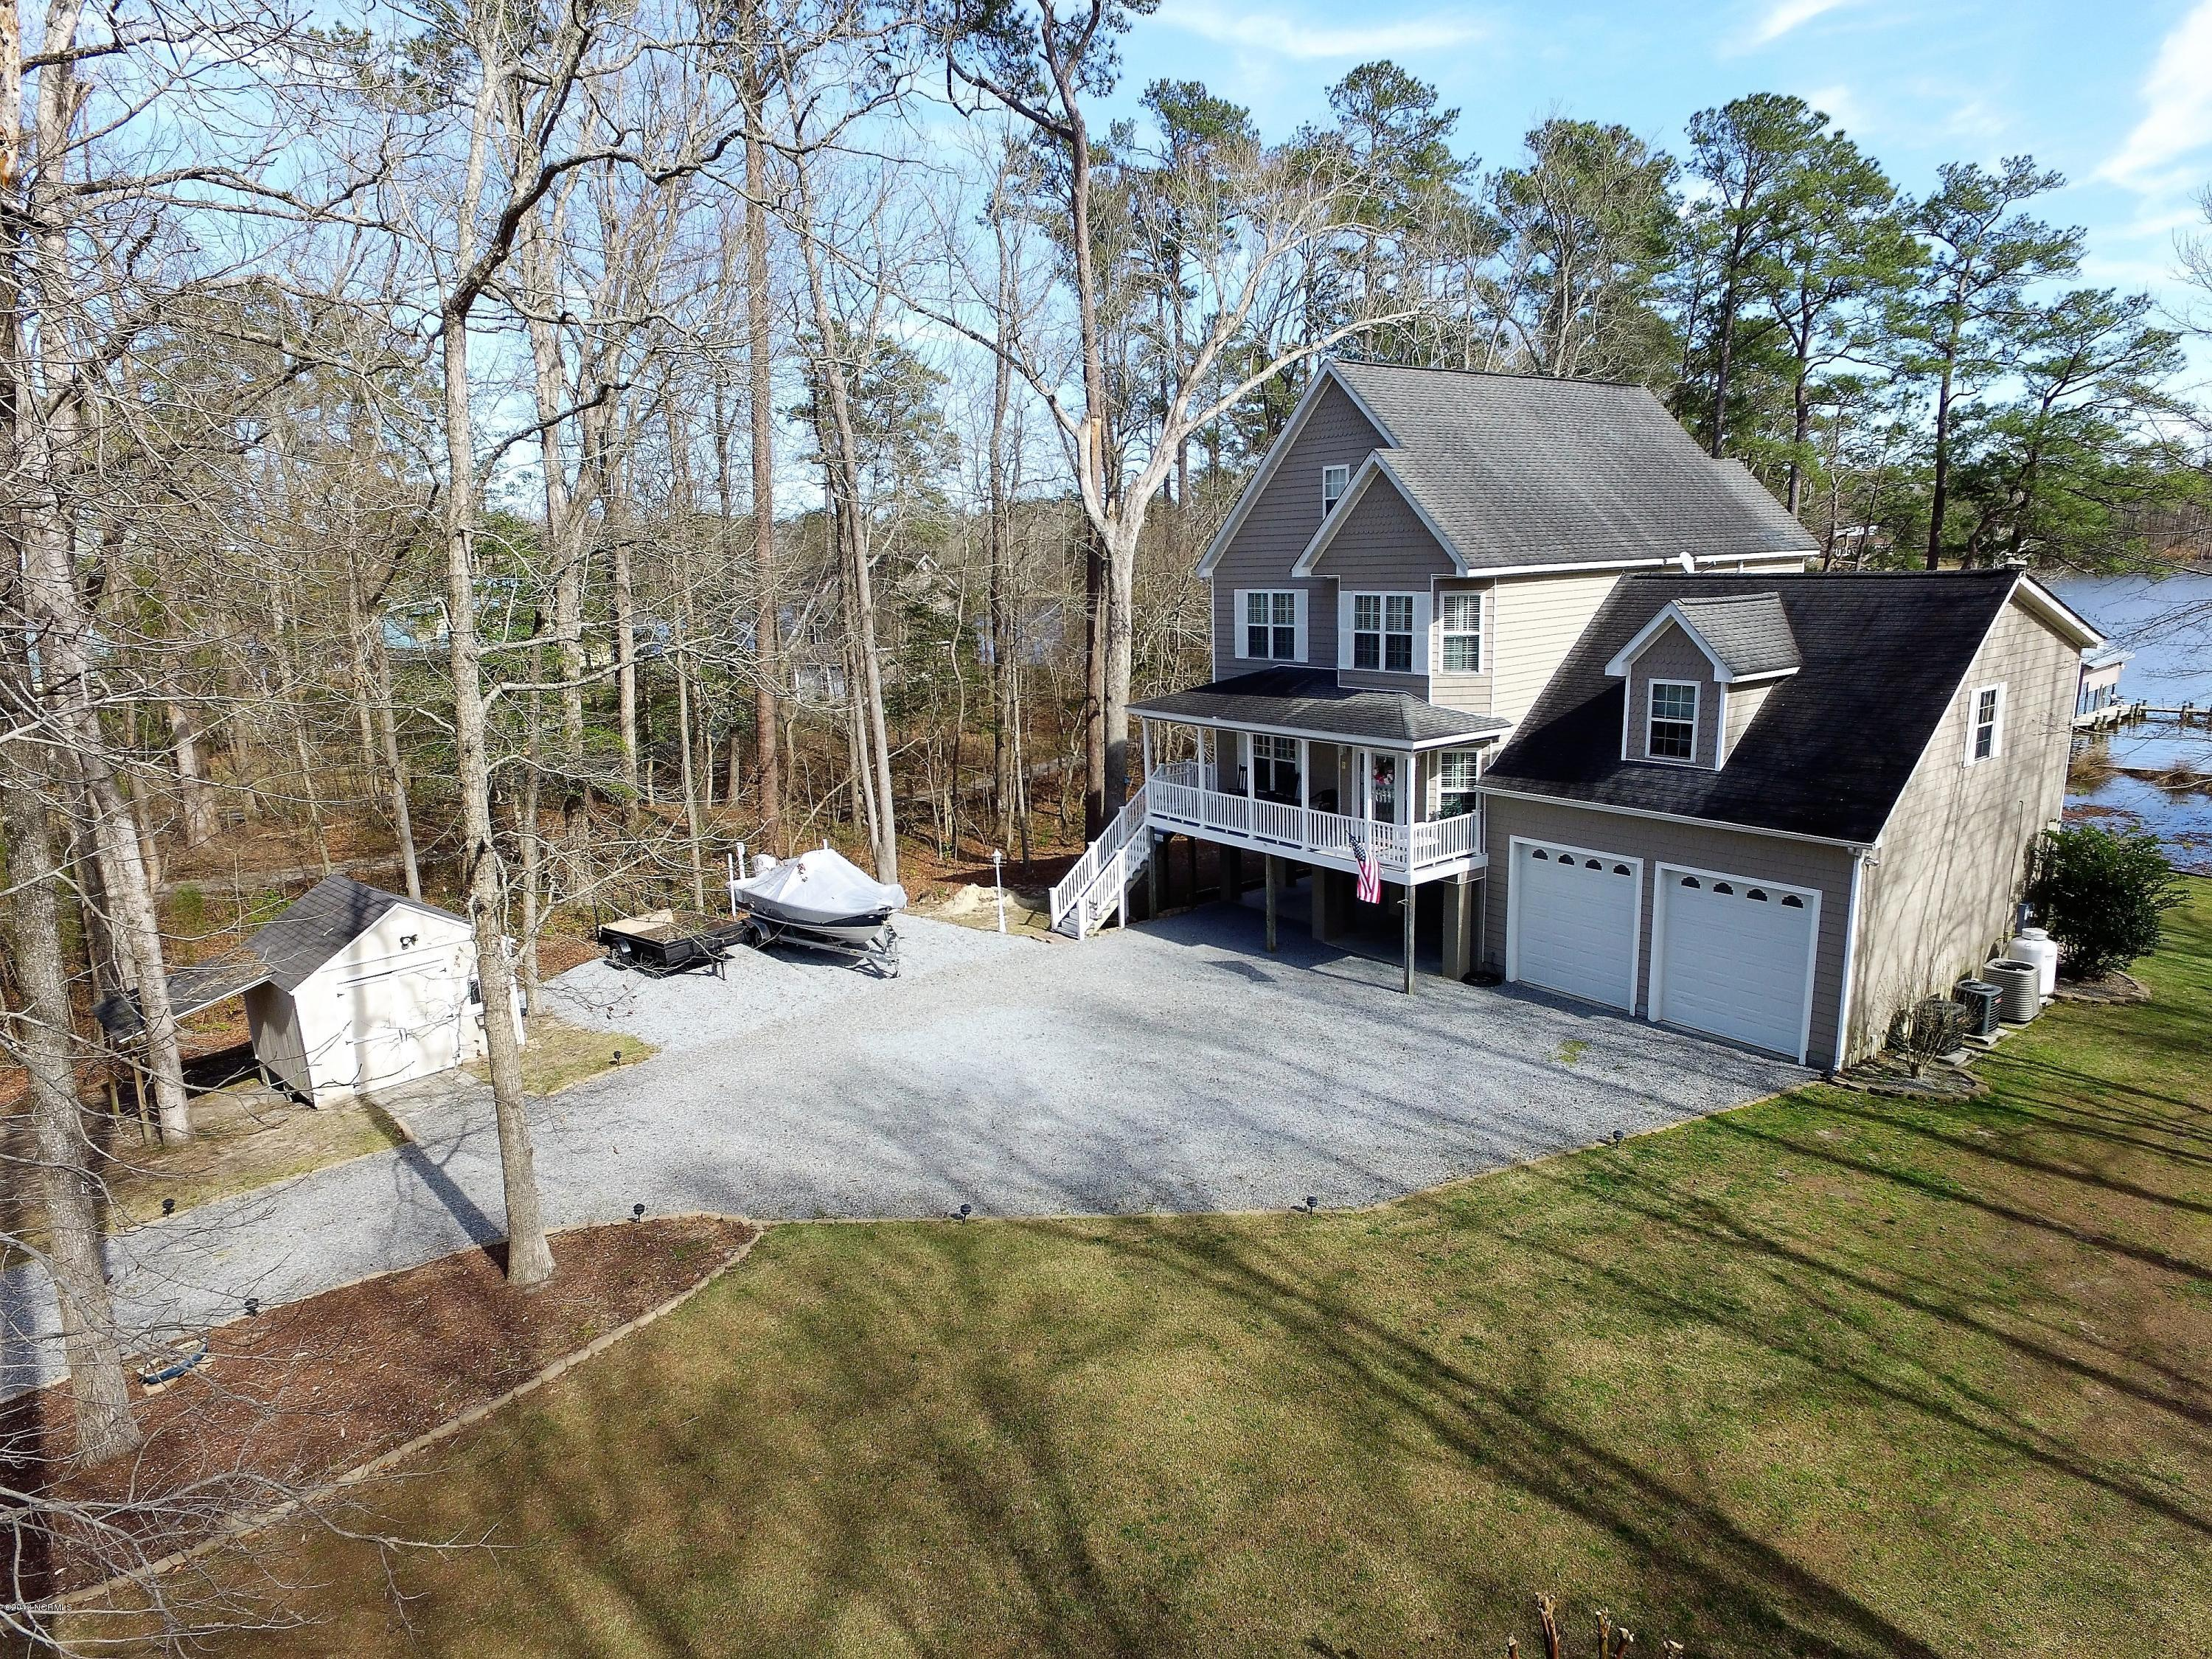 708 Sawmill Landing Road, Bath, North Carolina, 3 Bedrooms Bedrooms, 9 Rooms Rooms,2 BathroomsBathrooms,Single family residence,For sale,Sawmill Landing,100102860